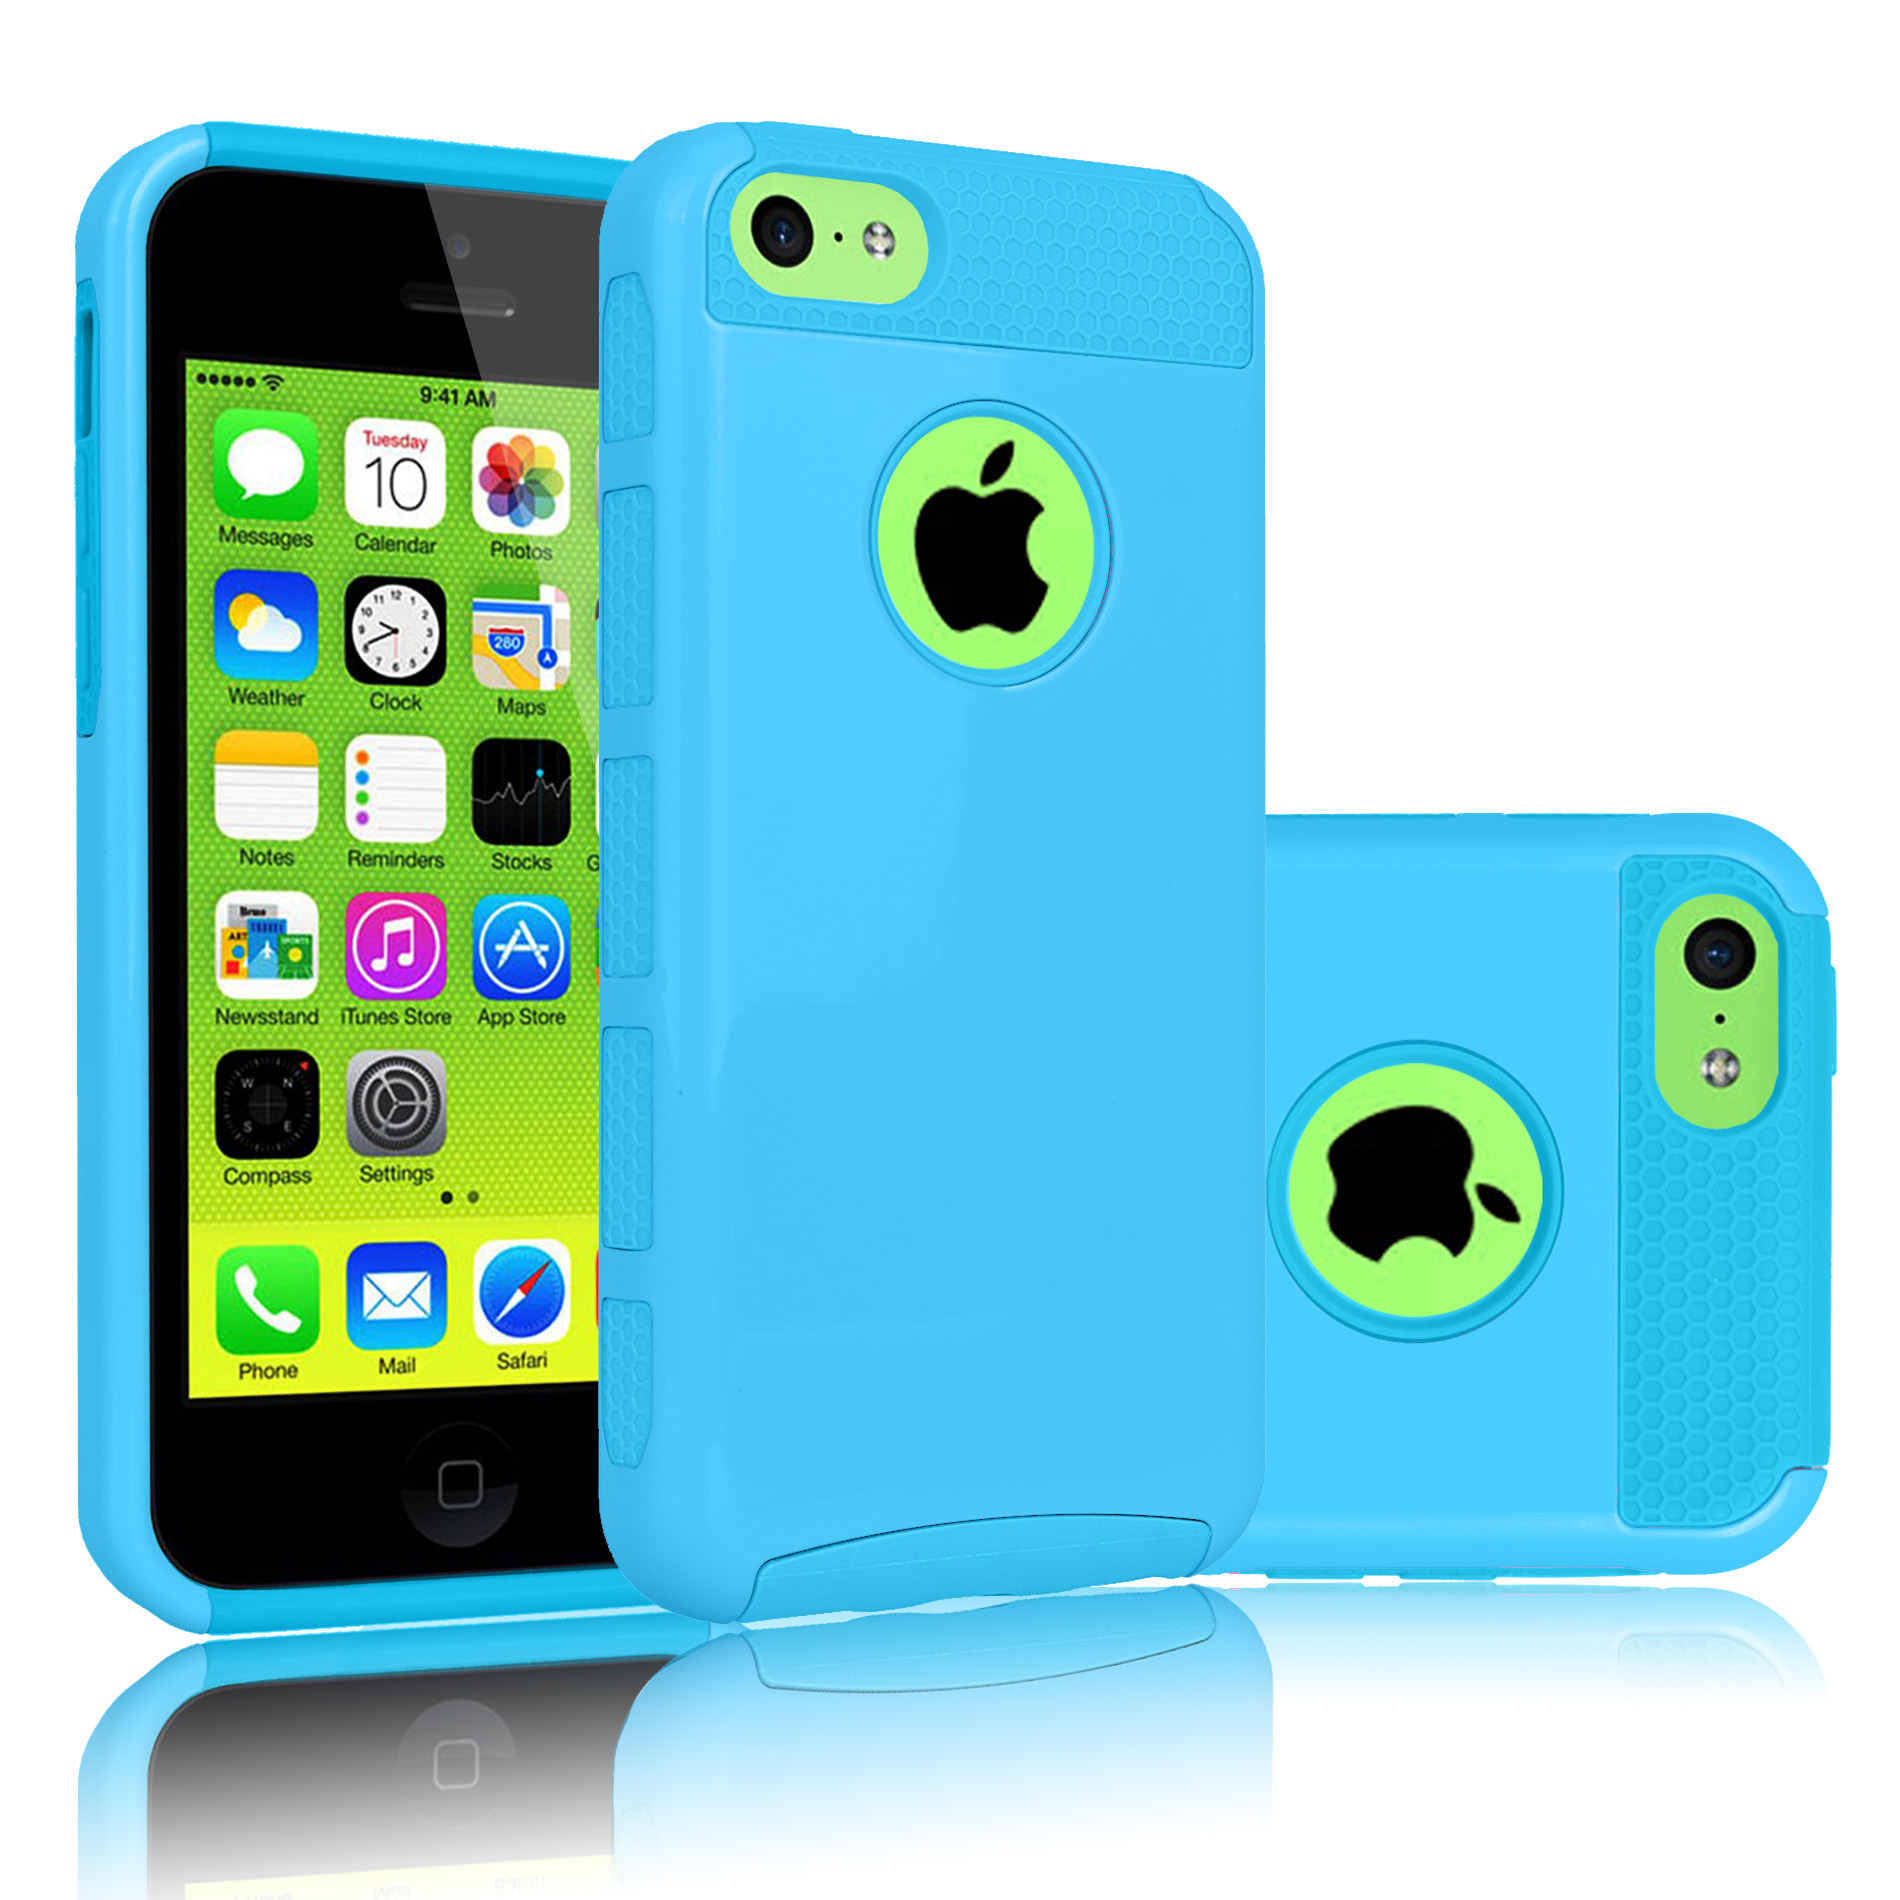 iPhone 5C Case, Tekcoo(TM) [TDuke] Protective Case For Apple iPhone 5C Hard Hybrid Defender Slim Glossy Cover [Scratch Proof] Plastic Shell Outer + TPU Rubber Inner [Sky Blue]